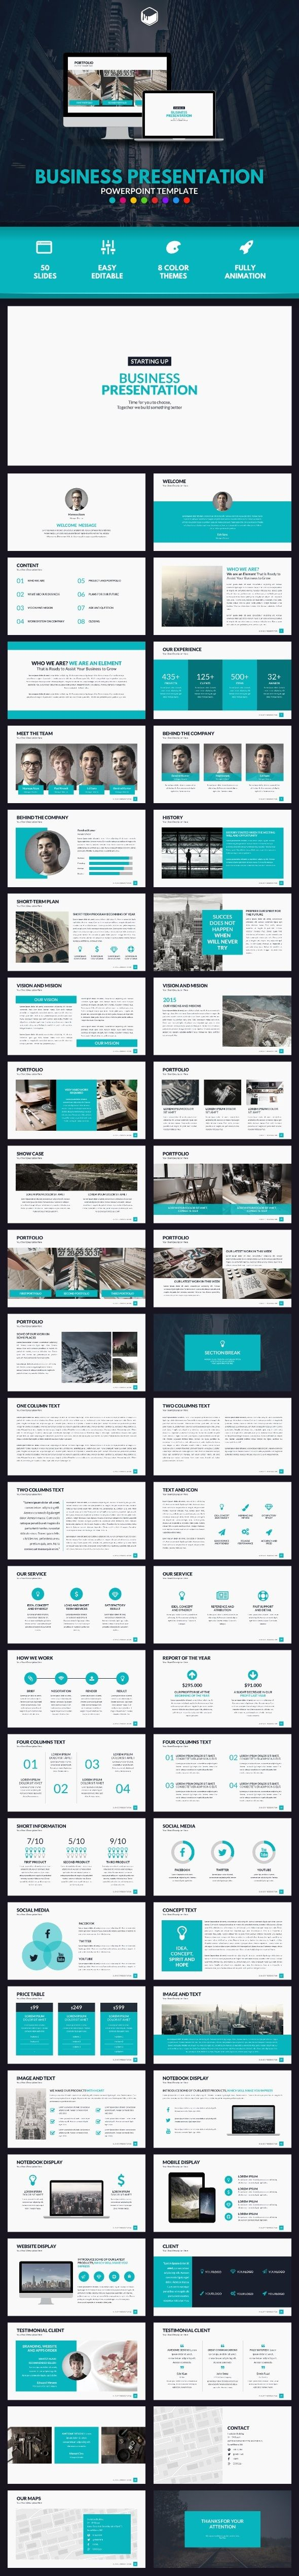 Business Presentation - PowerPoint Template #design #slides Download: http://graphicriver.net/item/business-presentation-powerpoint-template/12574621?ref=ksioks #Business #web design